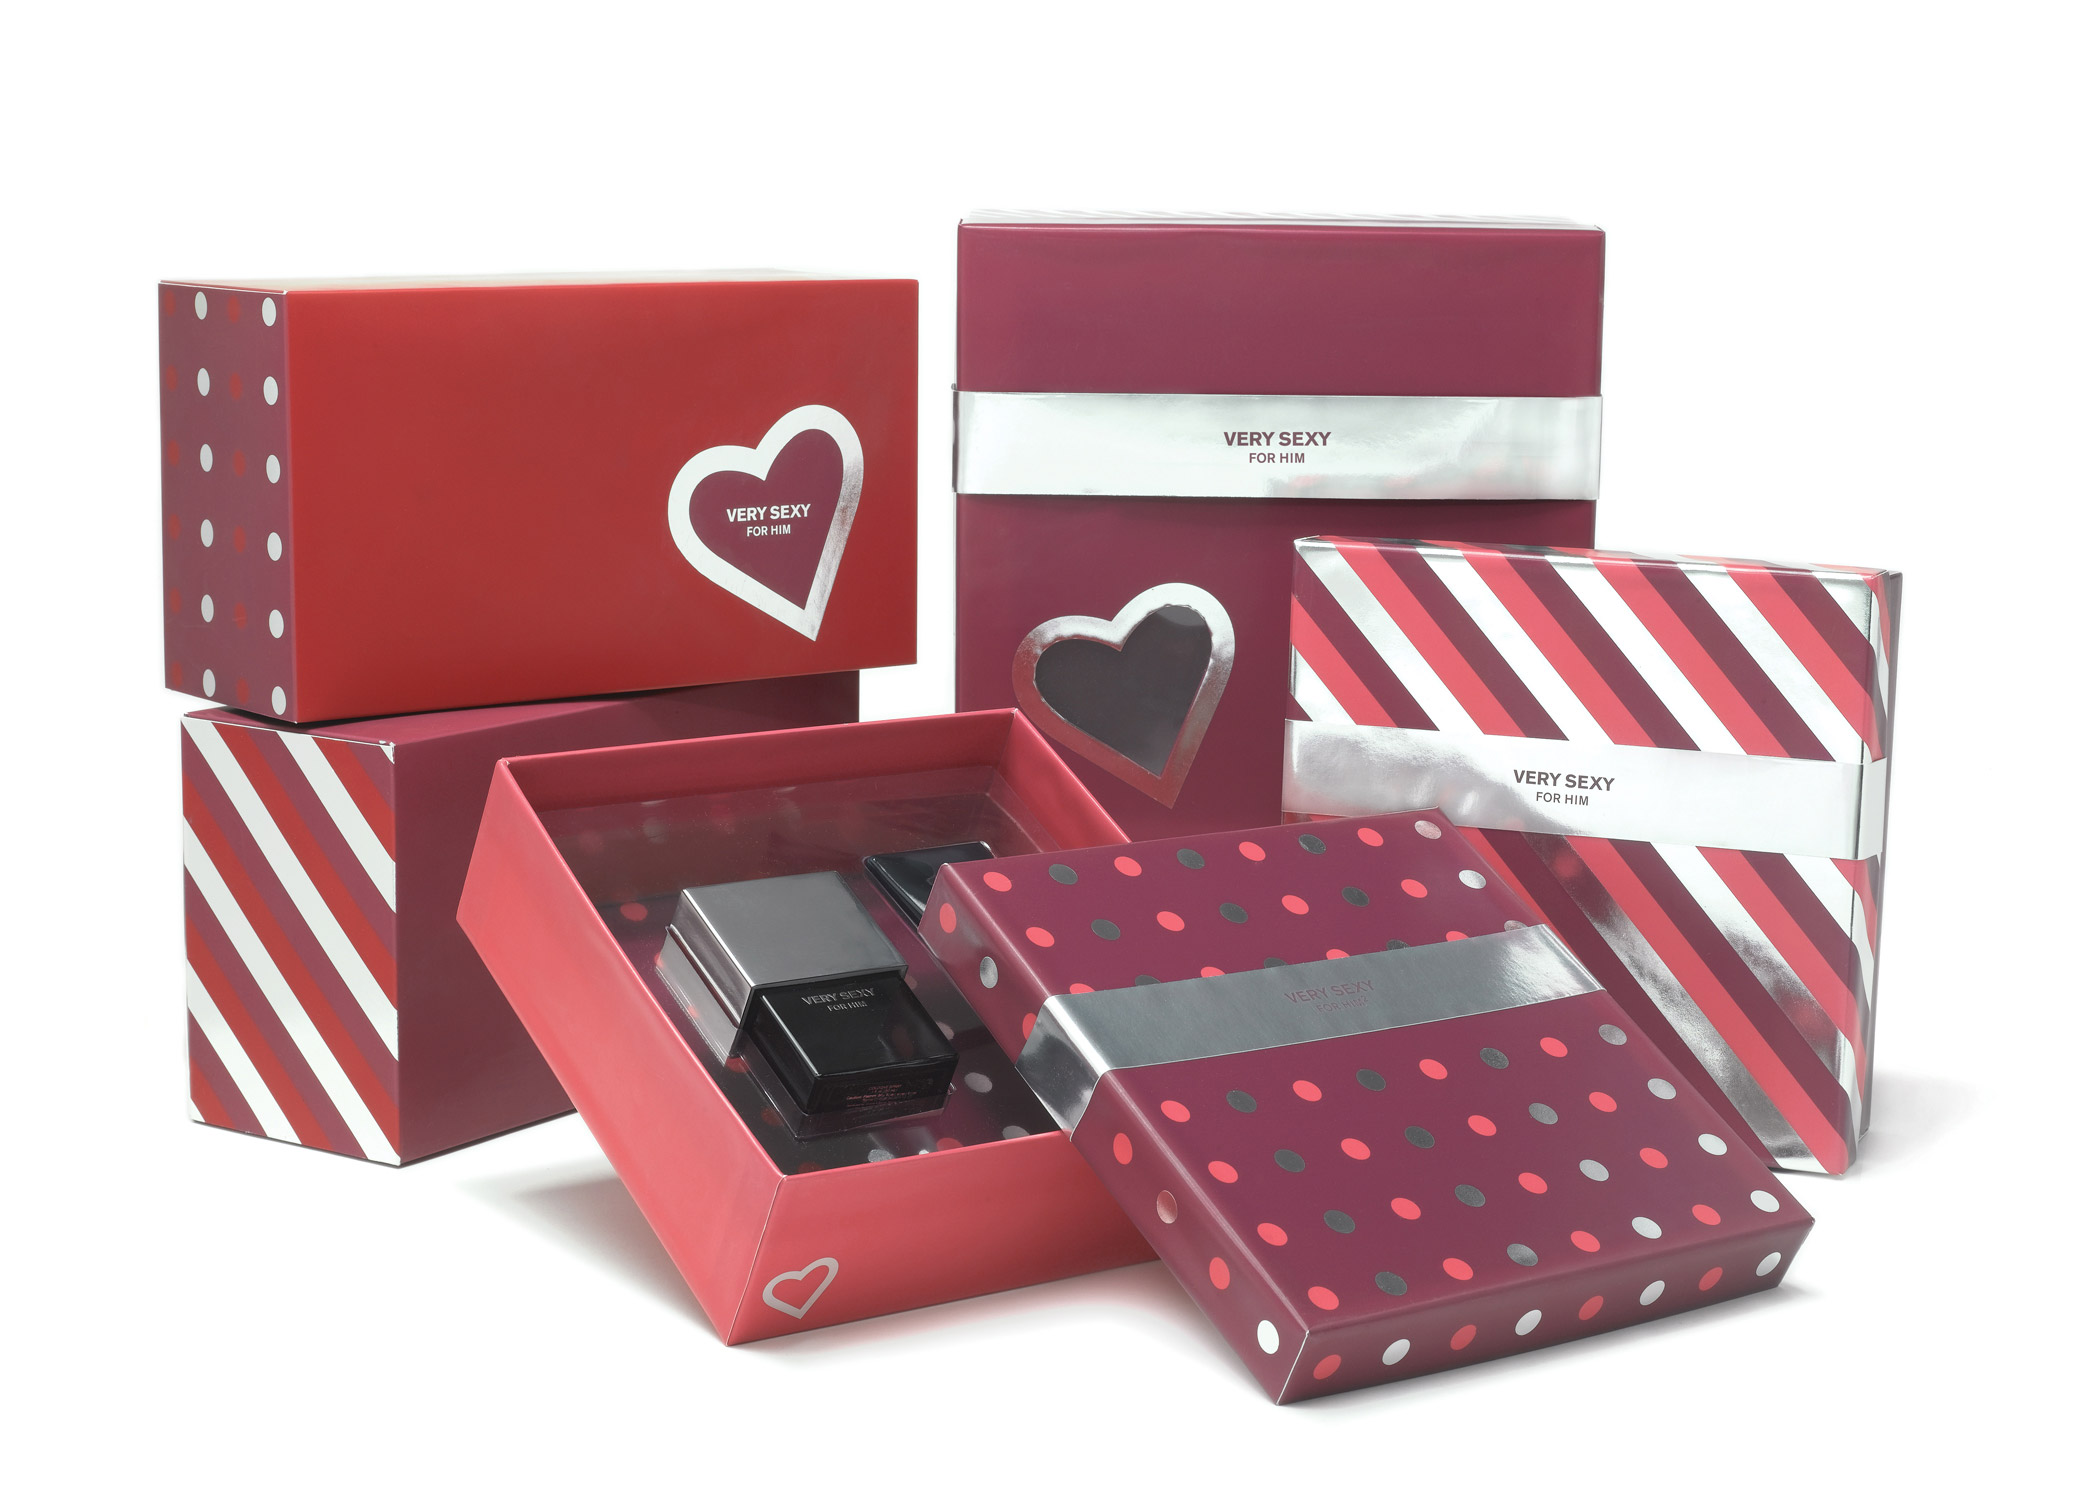 Cosmetic packaging design for Victoria's Secret Very Sexy For Him in silver and red with polka dots, diagonal stripes, and heart icons.